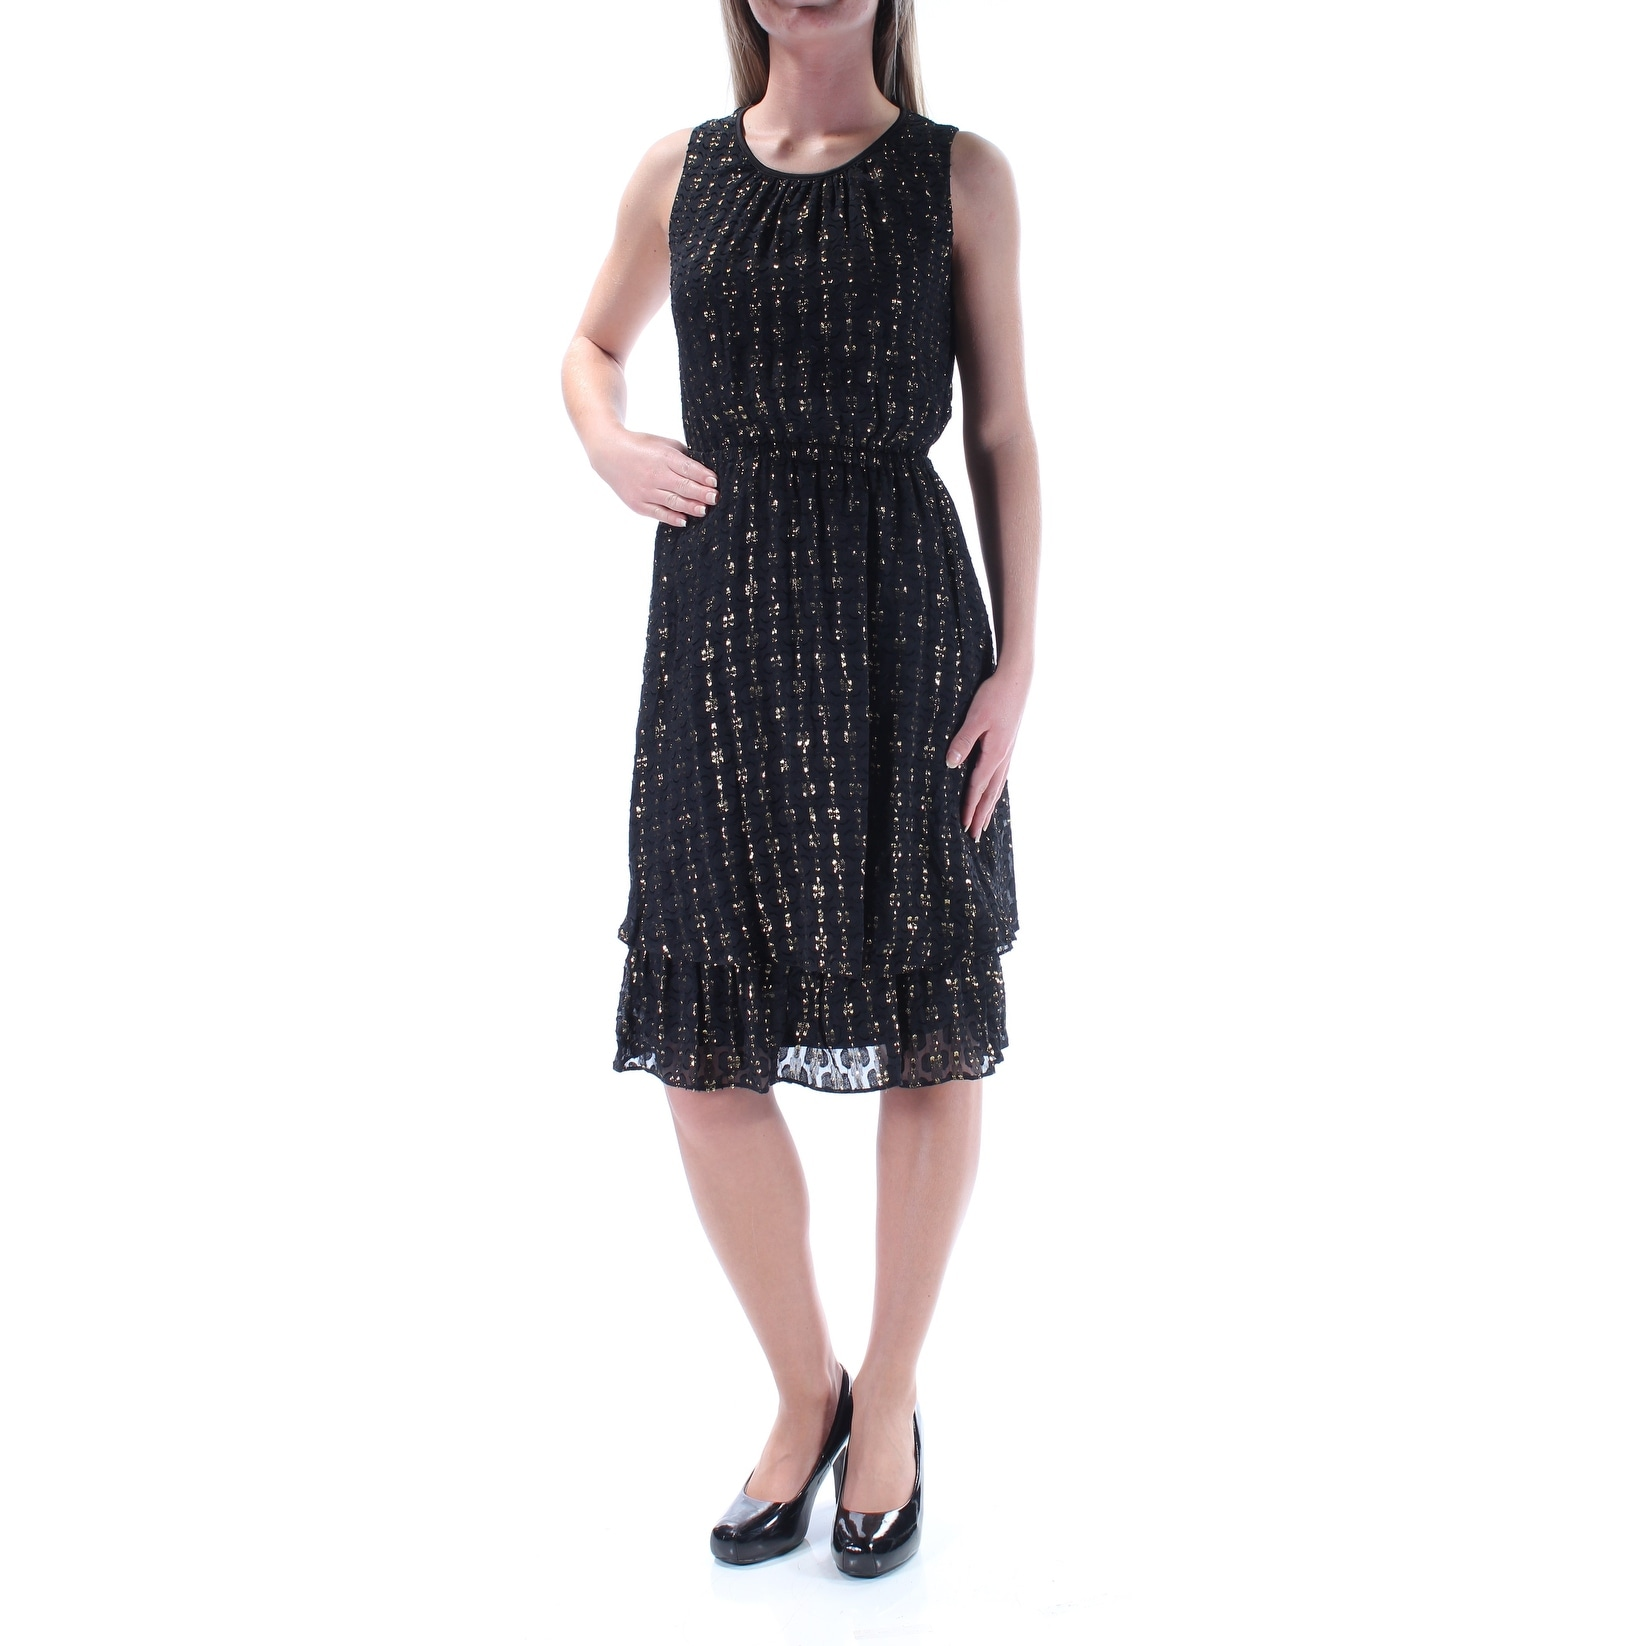 e349c725 Shop Womens Black Sleeveless Above The Knee Layered Cocktail Dress Size: 2XS  - On Sale - Free Shipping On Orders Over $45 - Overstock.com - 21511926